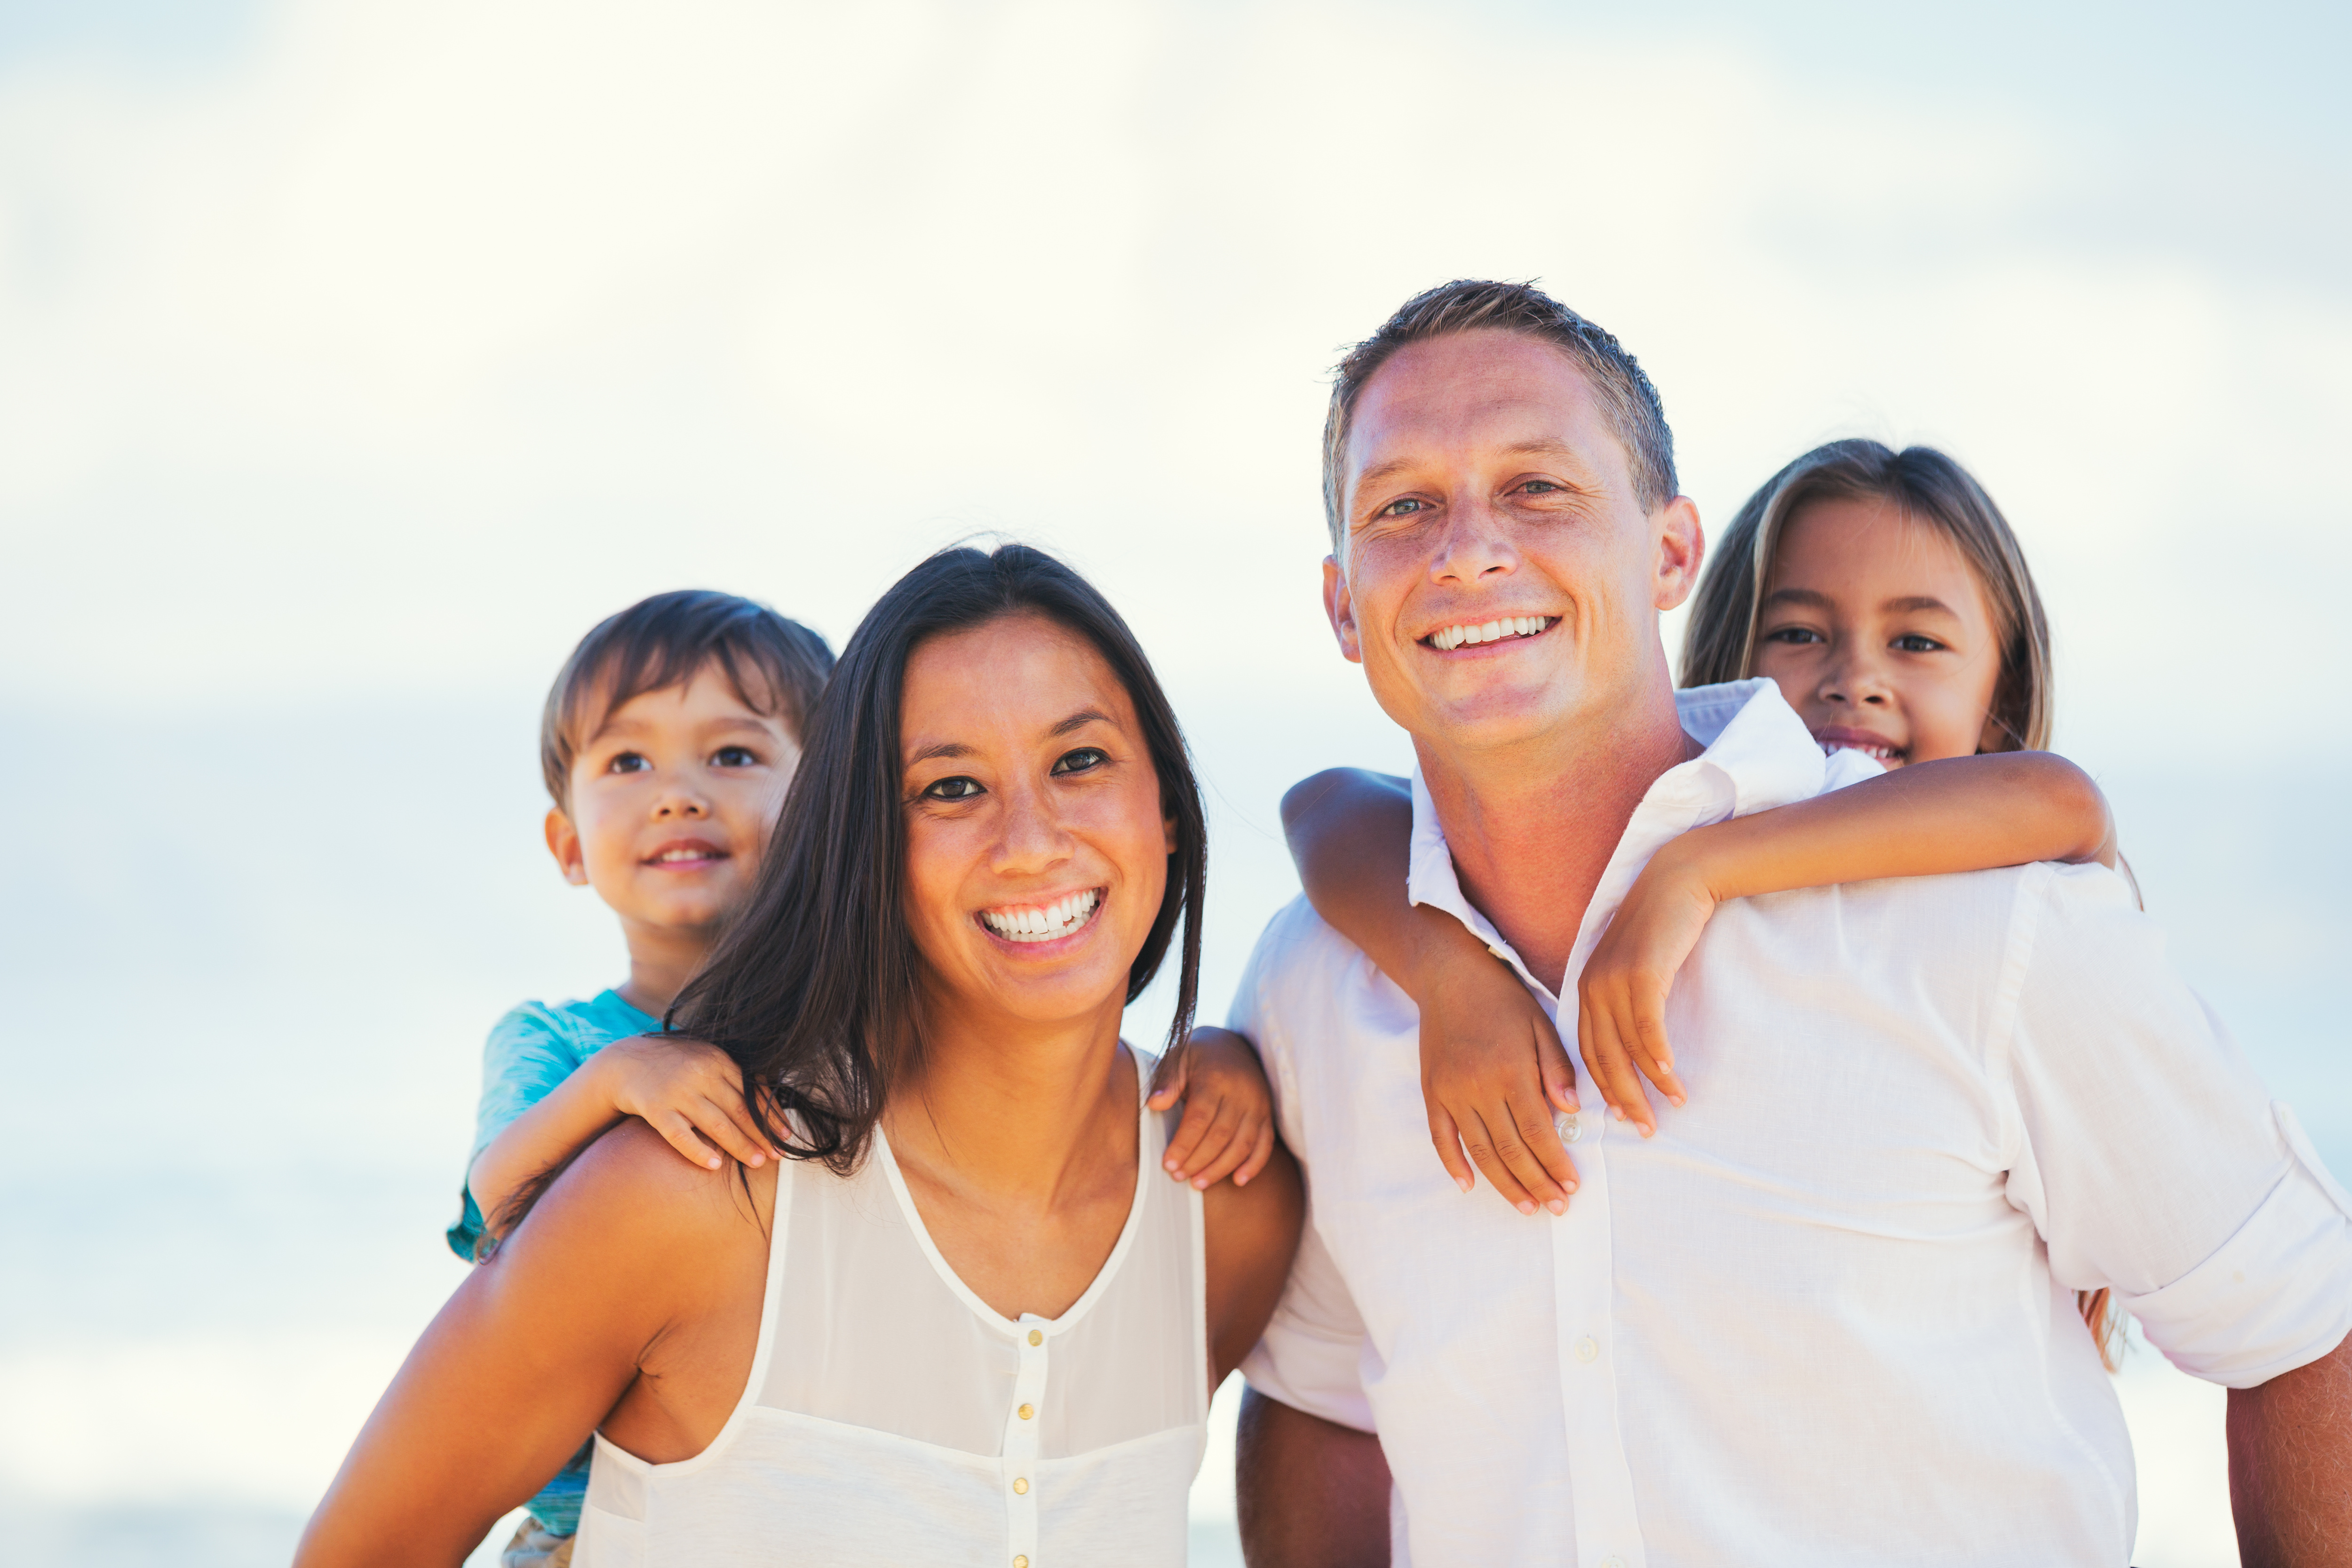 image from Infectious disease experts weigh in on how to plan a safe family vacation this summer